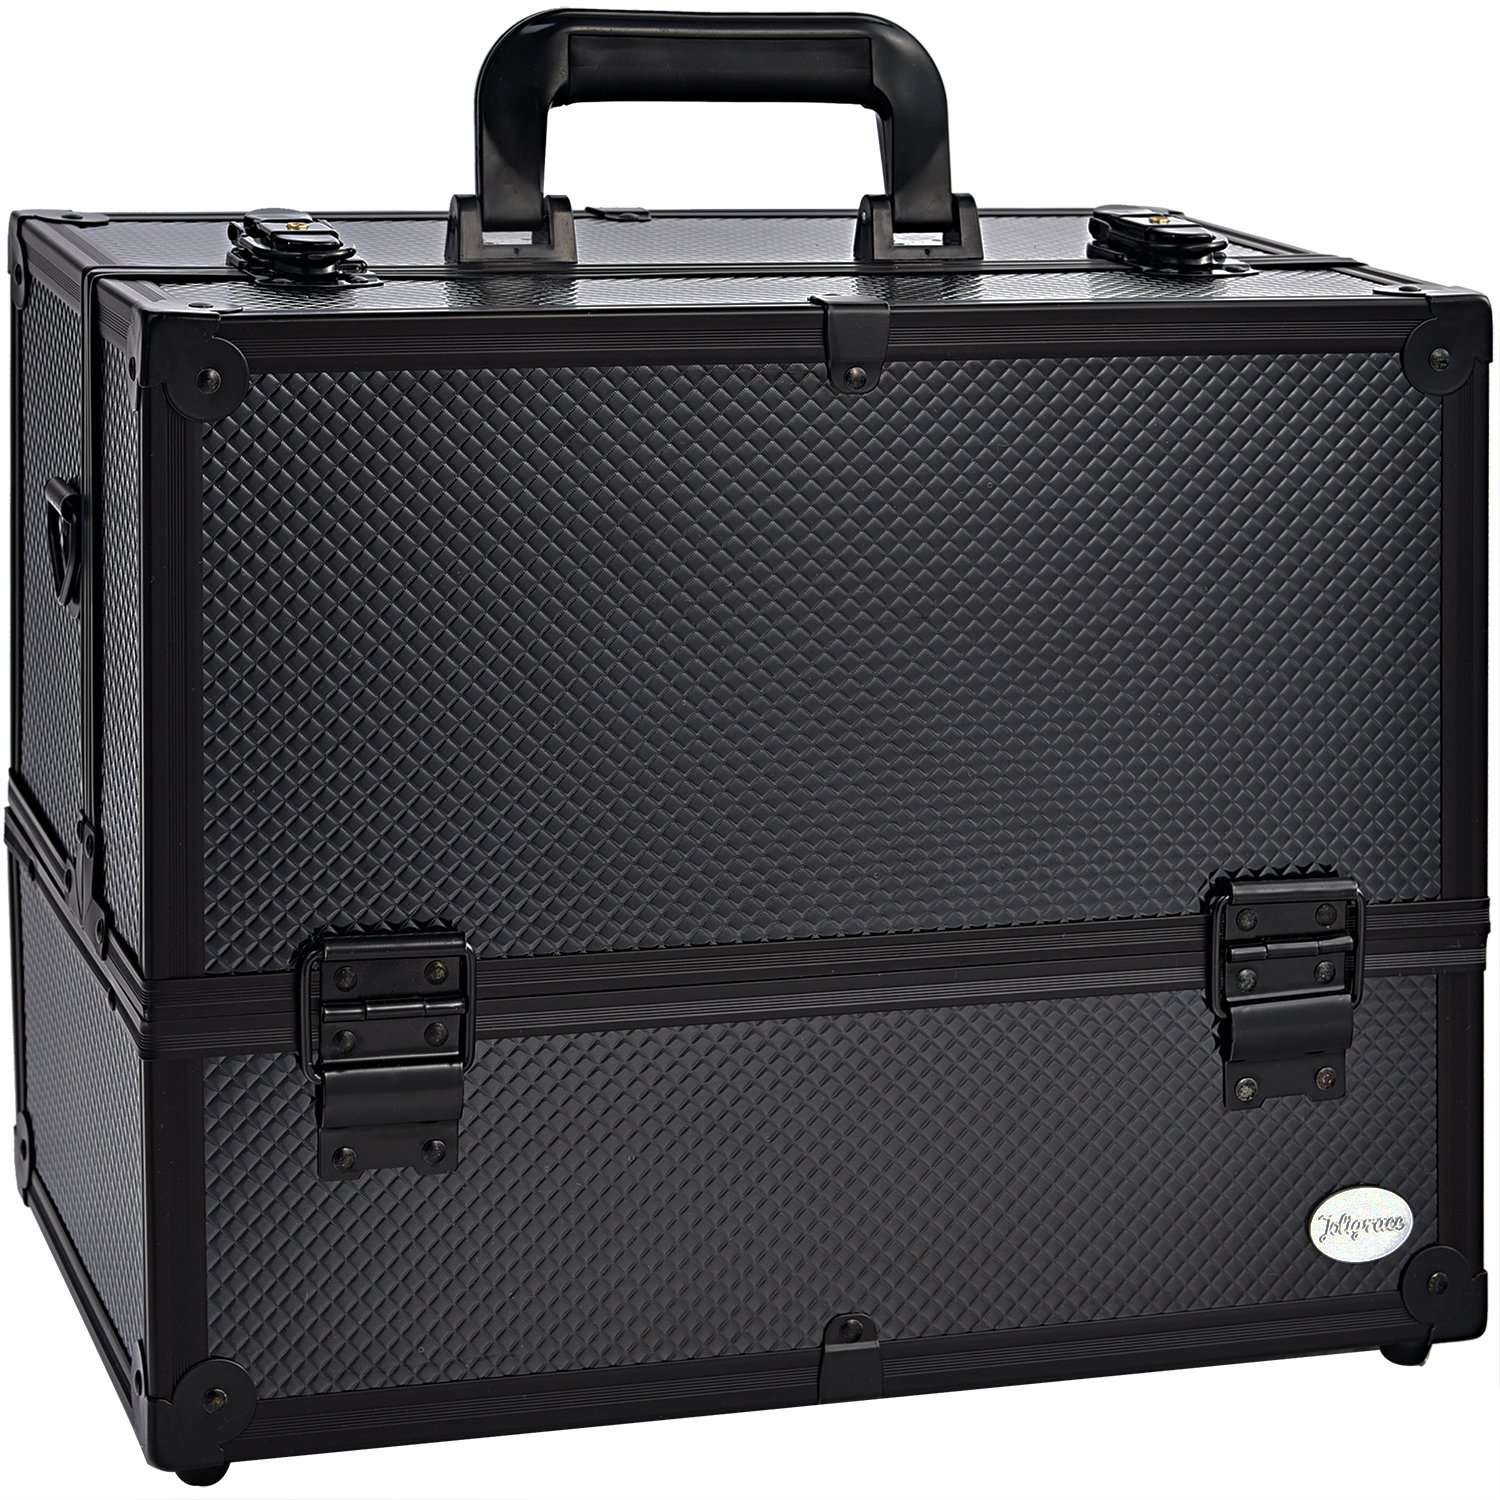 Joligrace 6 Trays Makeup Train Case Cosmetic Box with Lock & Compartments 14 Inch Large Black